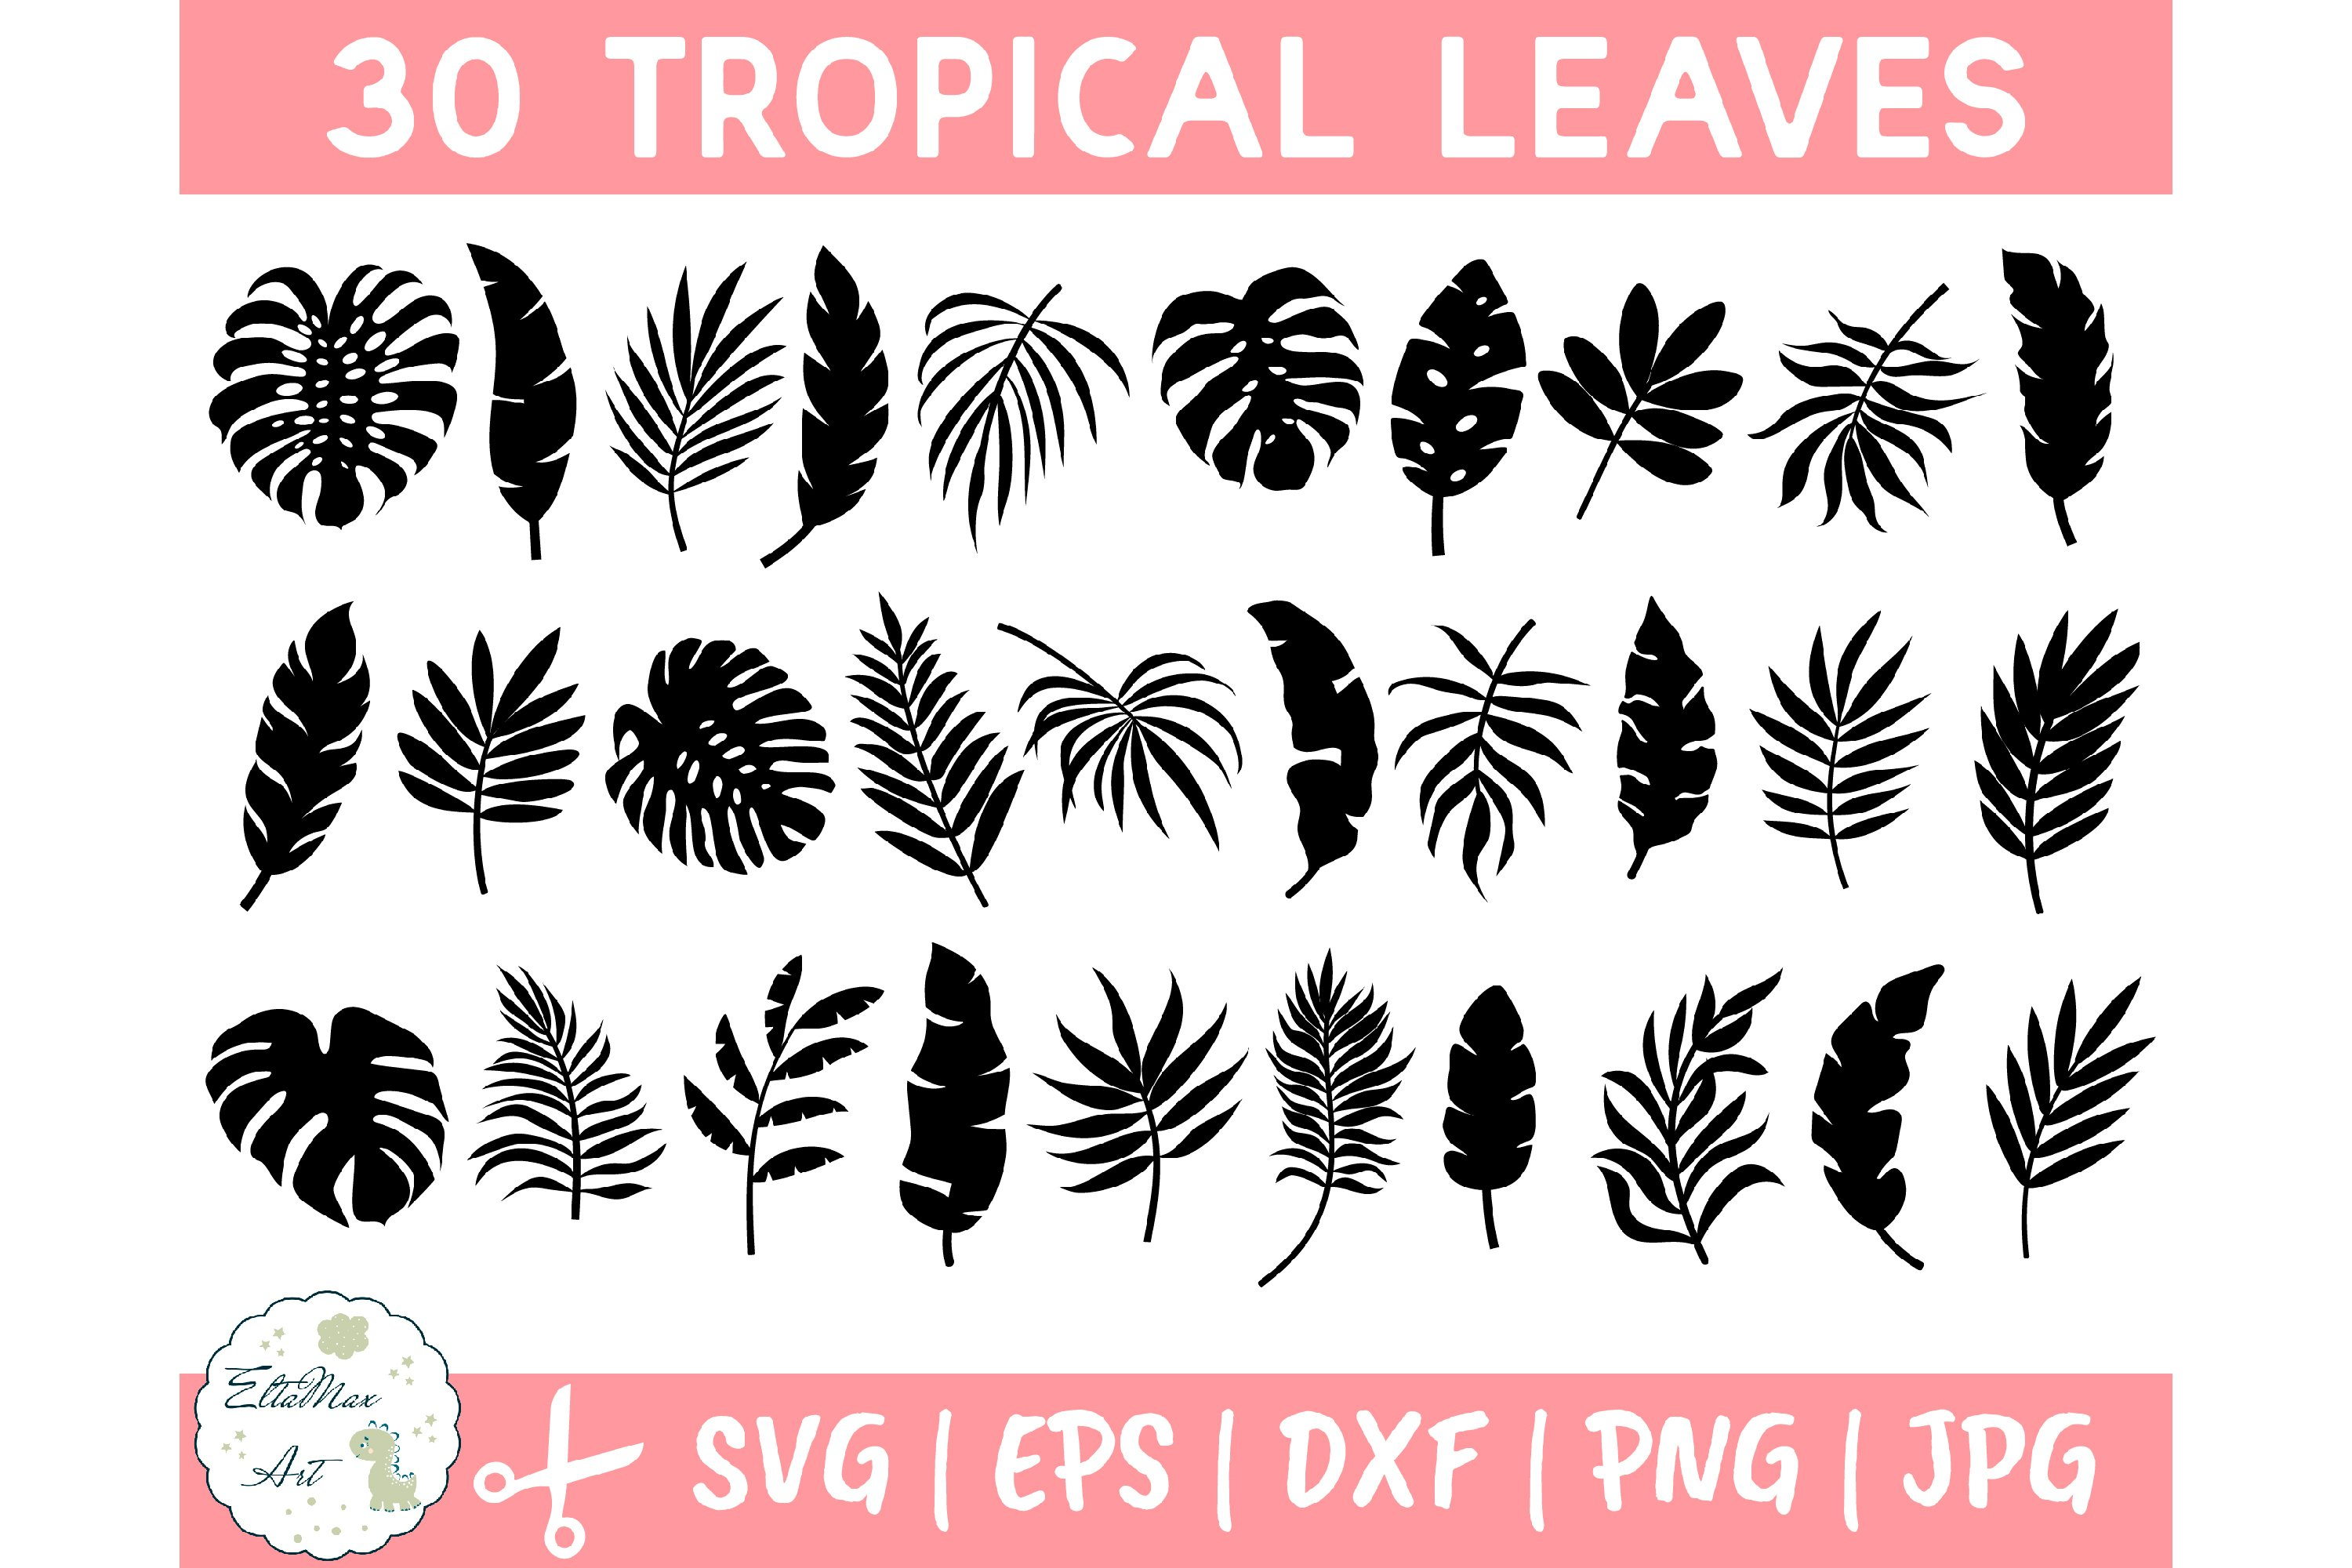 Tropical Leaves Svg Bundle Palm Leaves Svg Jungle Leaves 645832 Illustrations Design Bundles Choose from 700+ tropical leaves graphic resources and download in the form of png, eps, ai or psd. tropical leaves svg bundle palm leaves svg jungle leaves